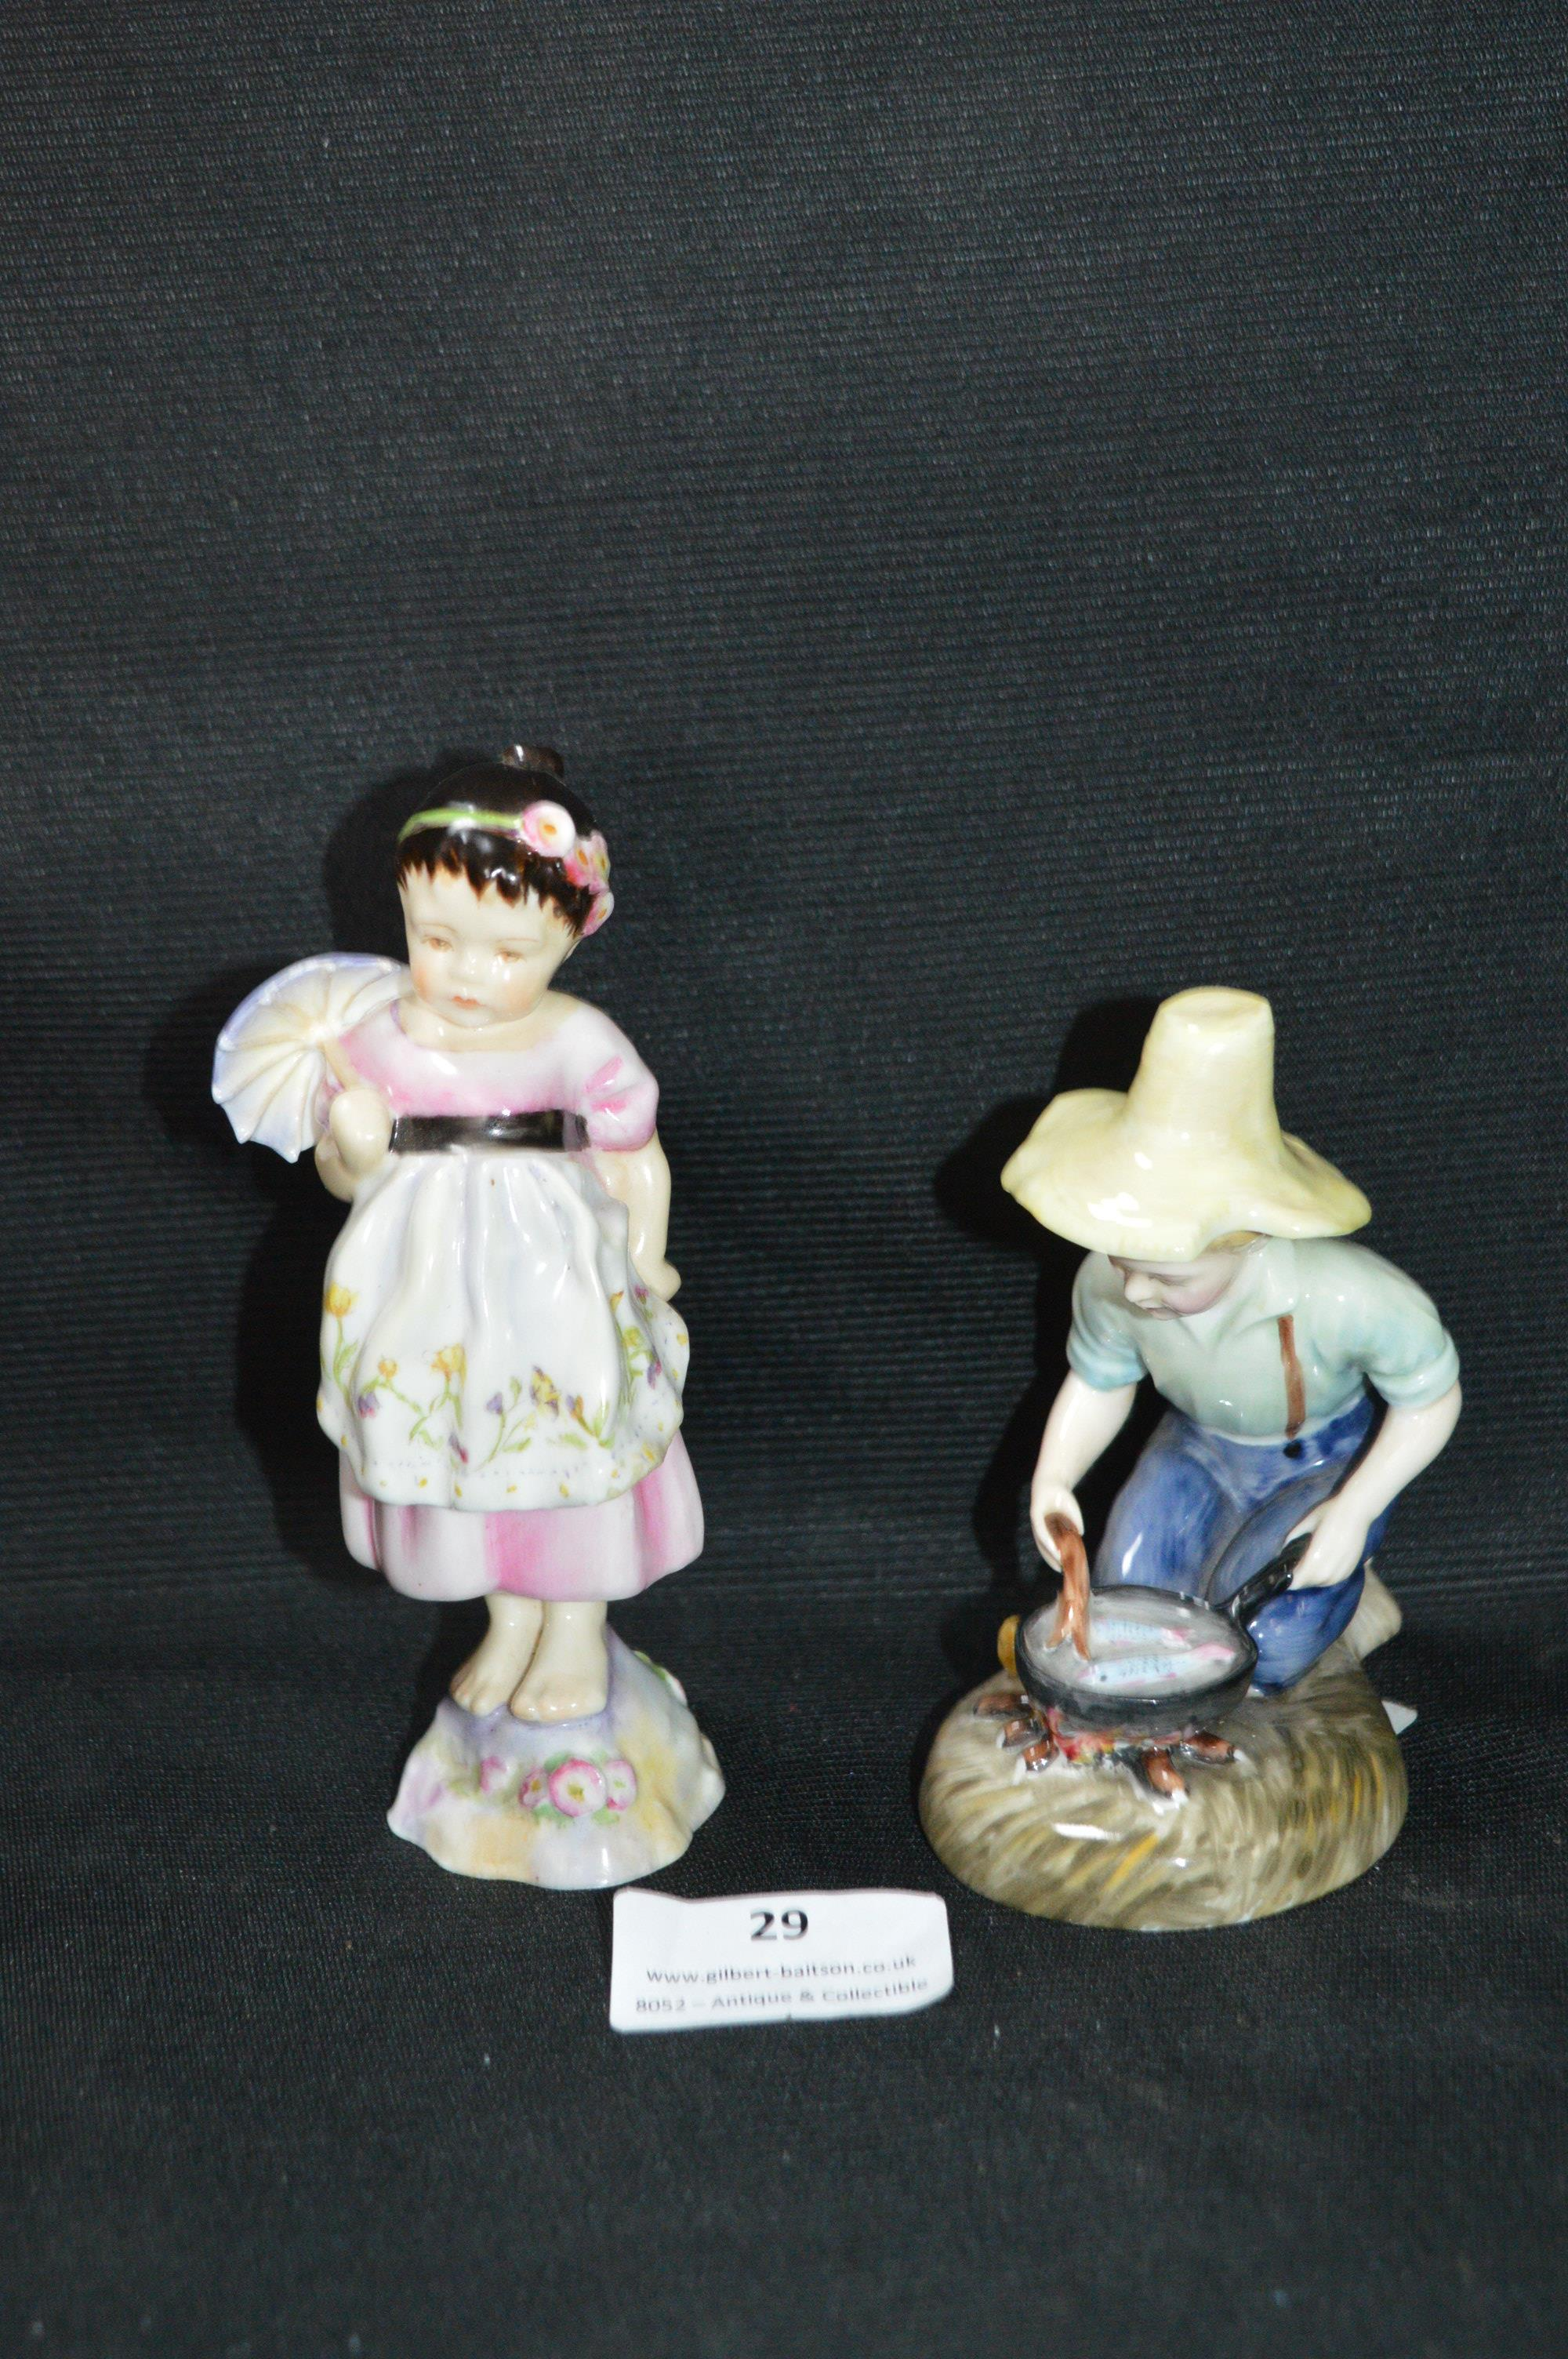 Lot 29 - Rare Royal Doulton Figurine - River Boy, and a Small Royal Worcester Figurine of a Young Girl